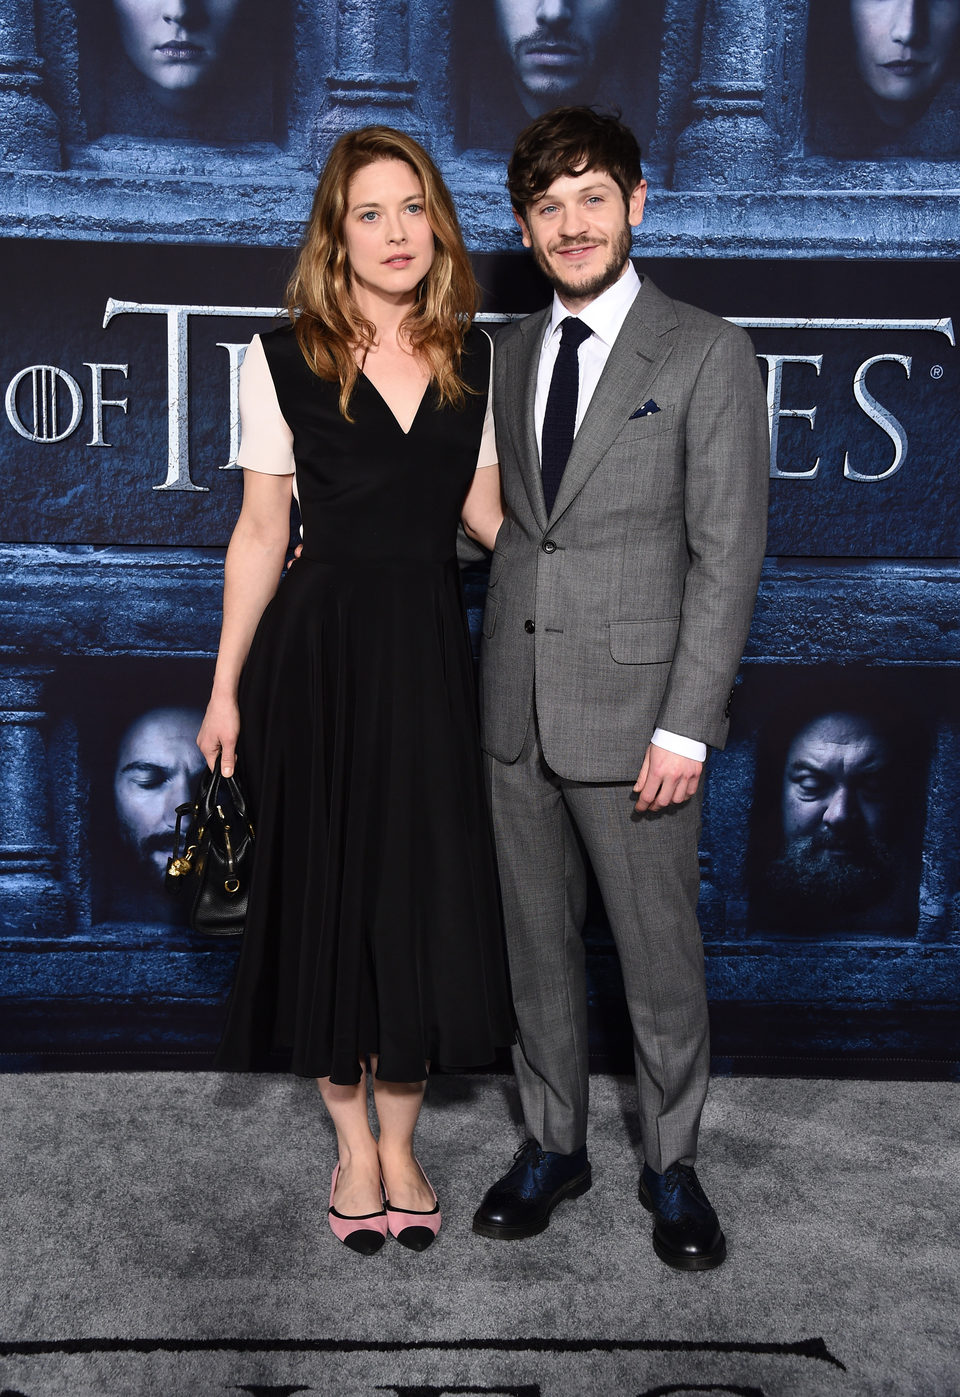 Iwan Rheon at the premiere of 'Game of Thrones' Season Six